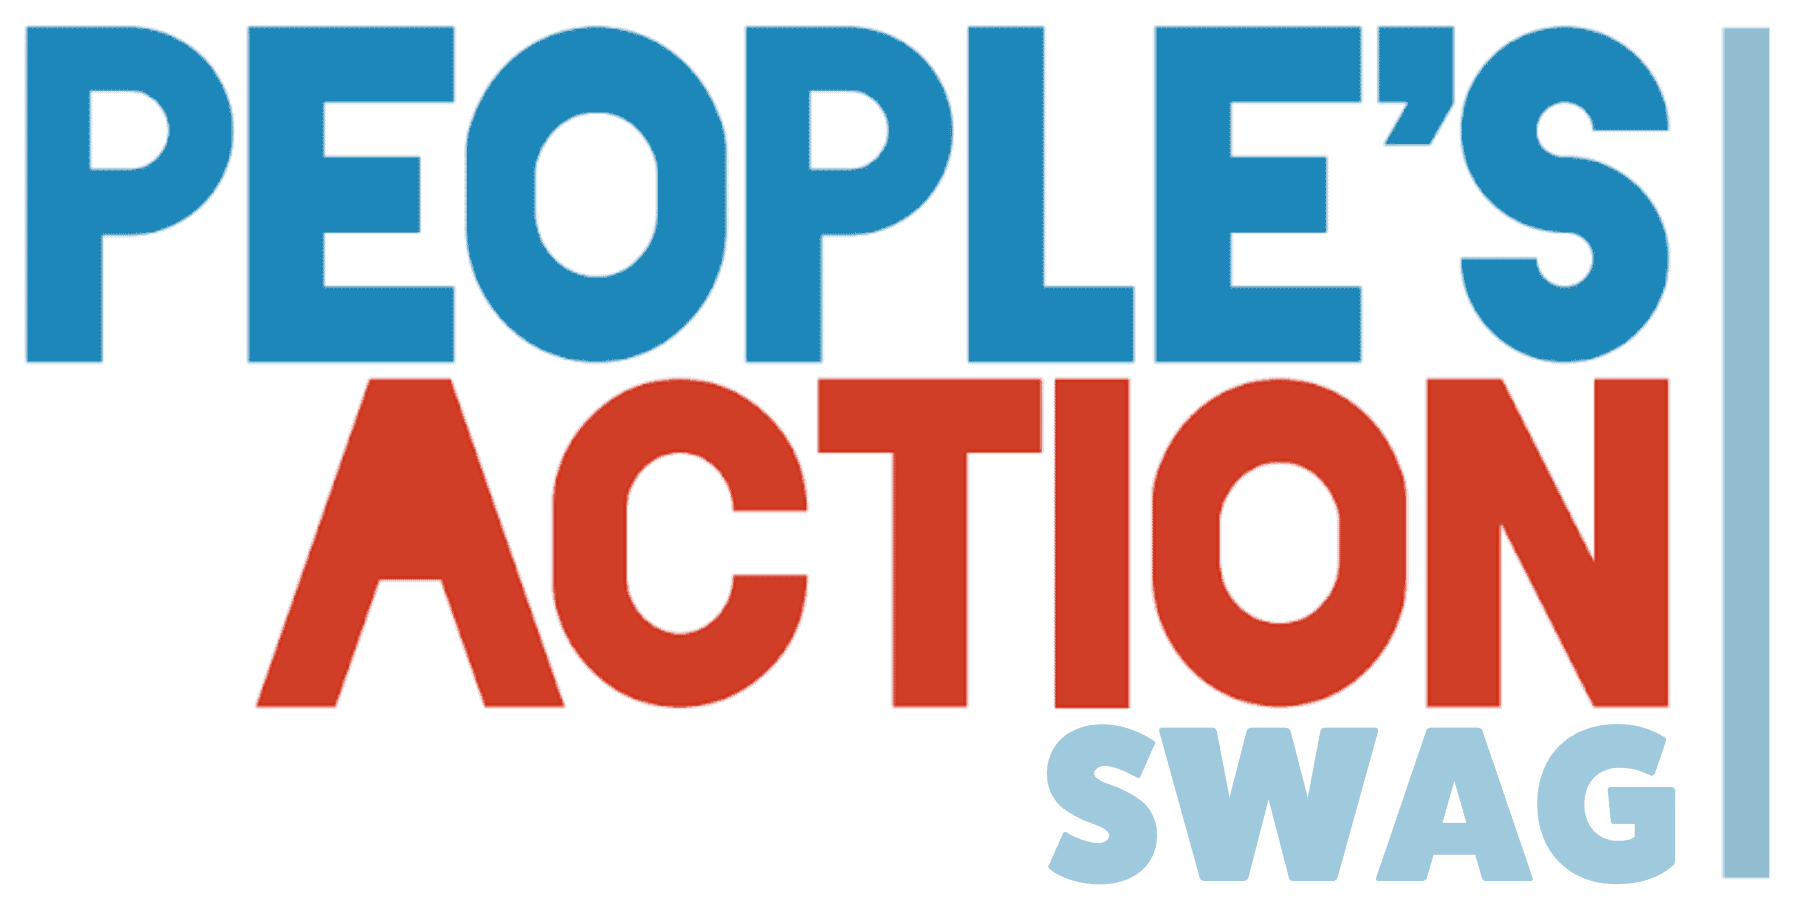 People's Action Swag